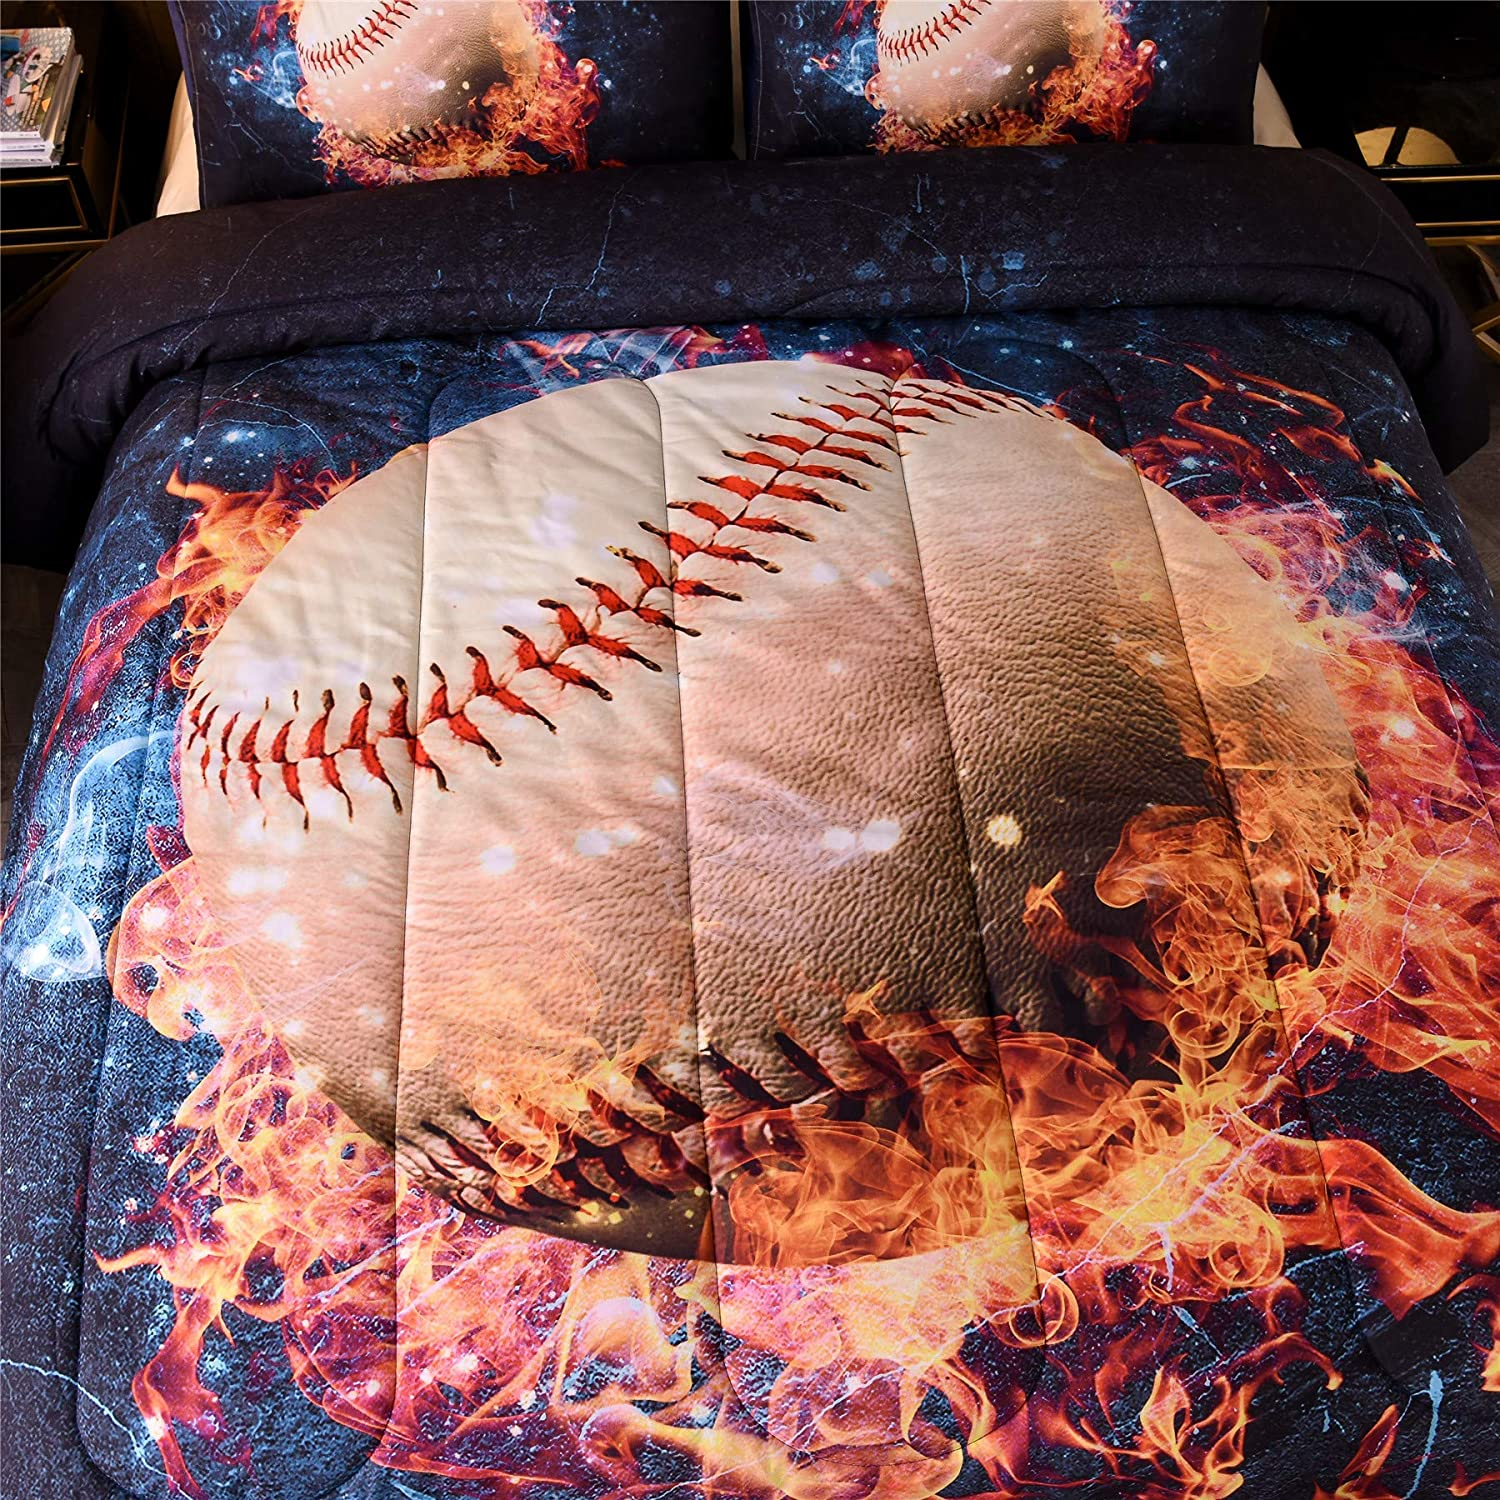 A Nice Night Baseball with Fire Comforter Set ,3D Sports Themed Microfiber Bedding Set,Gifts for Boys Girls Teens